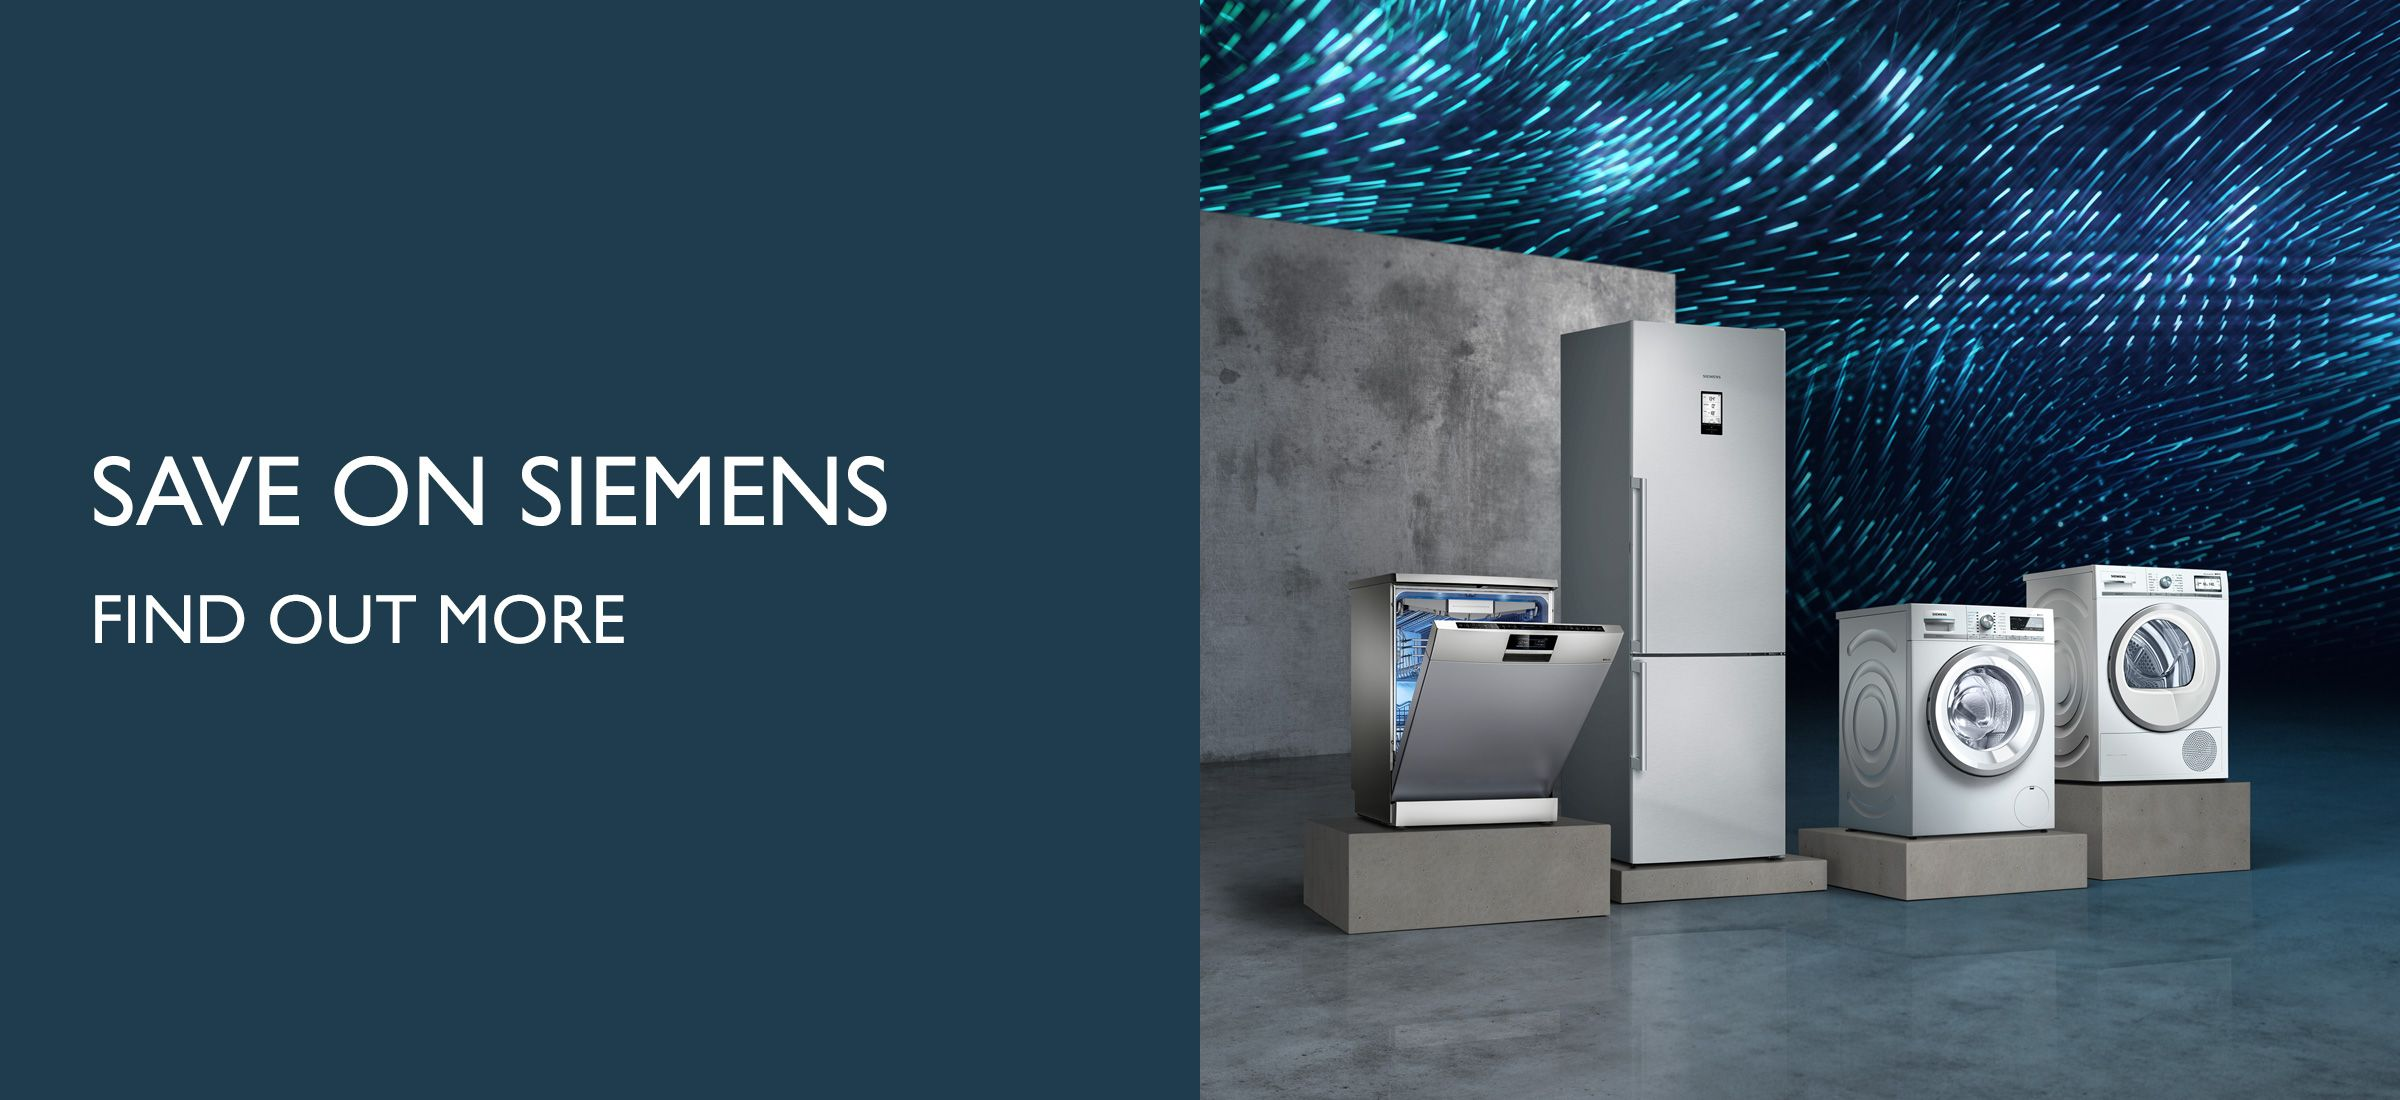 Save on Siemens